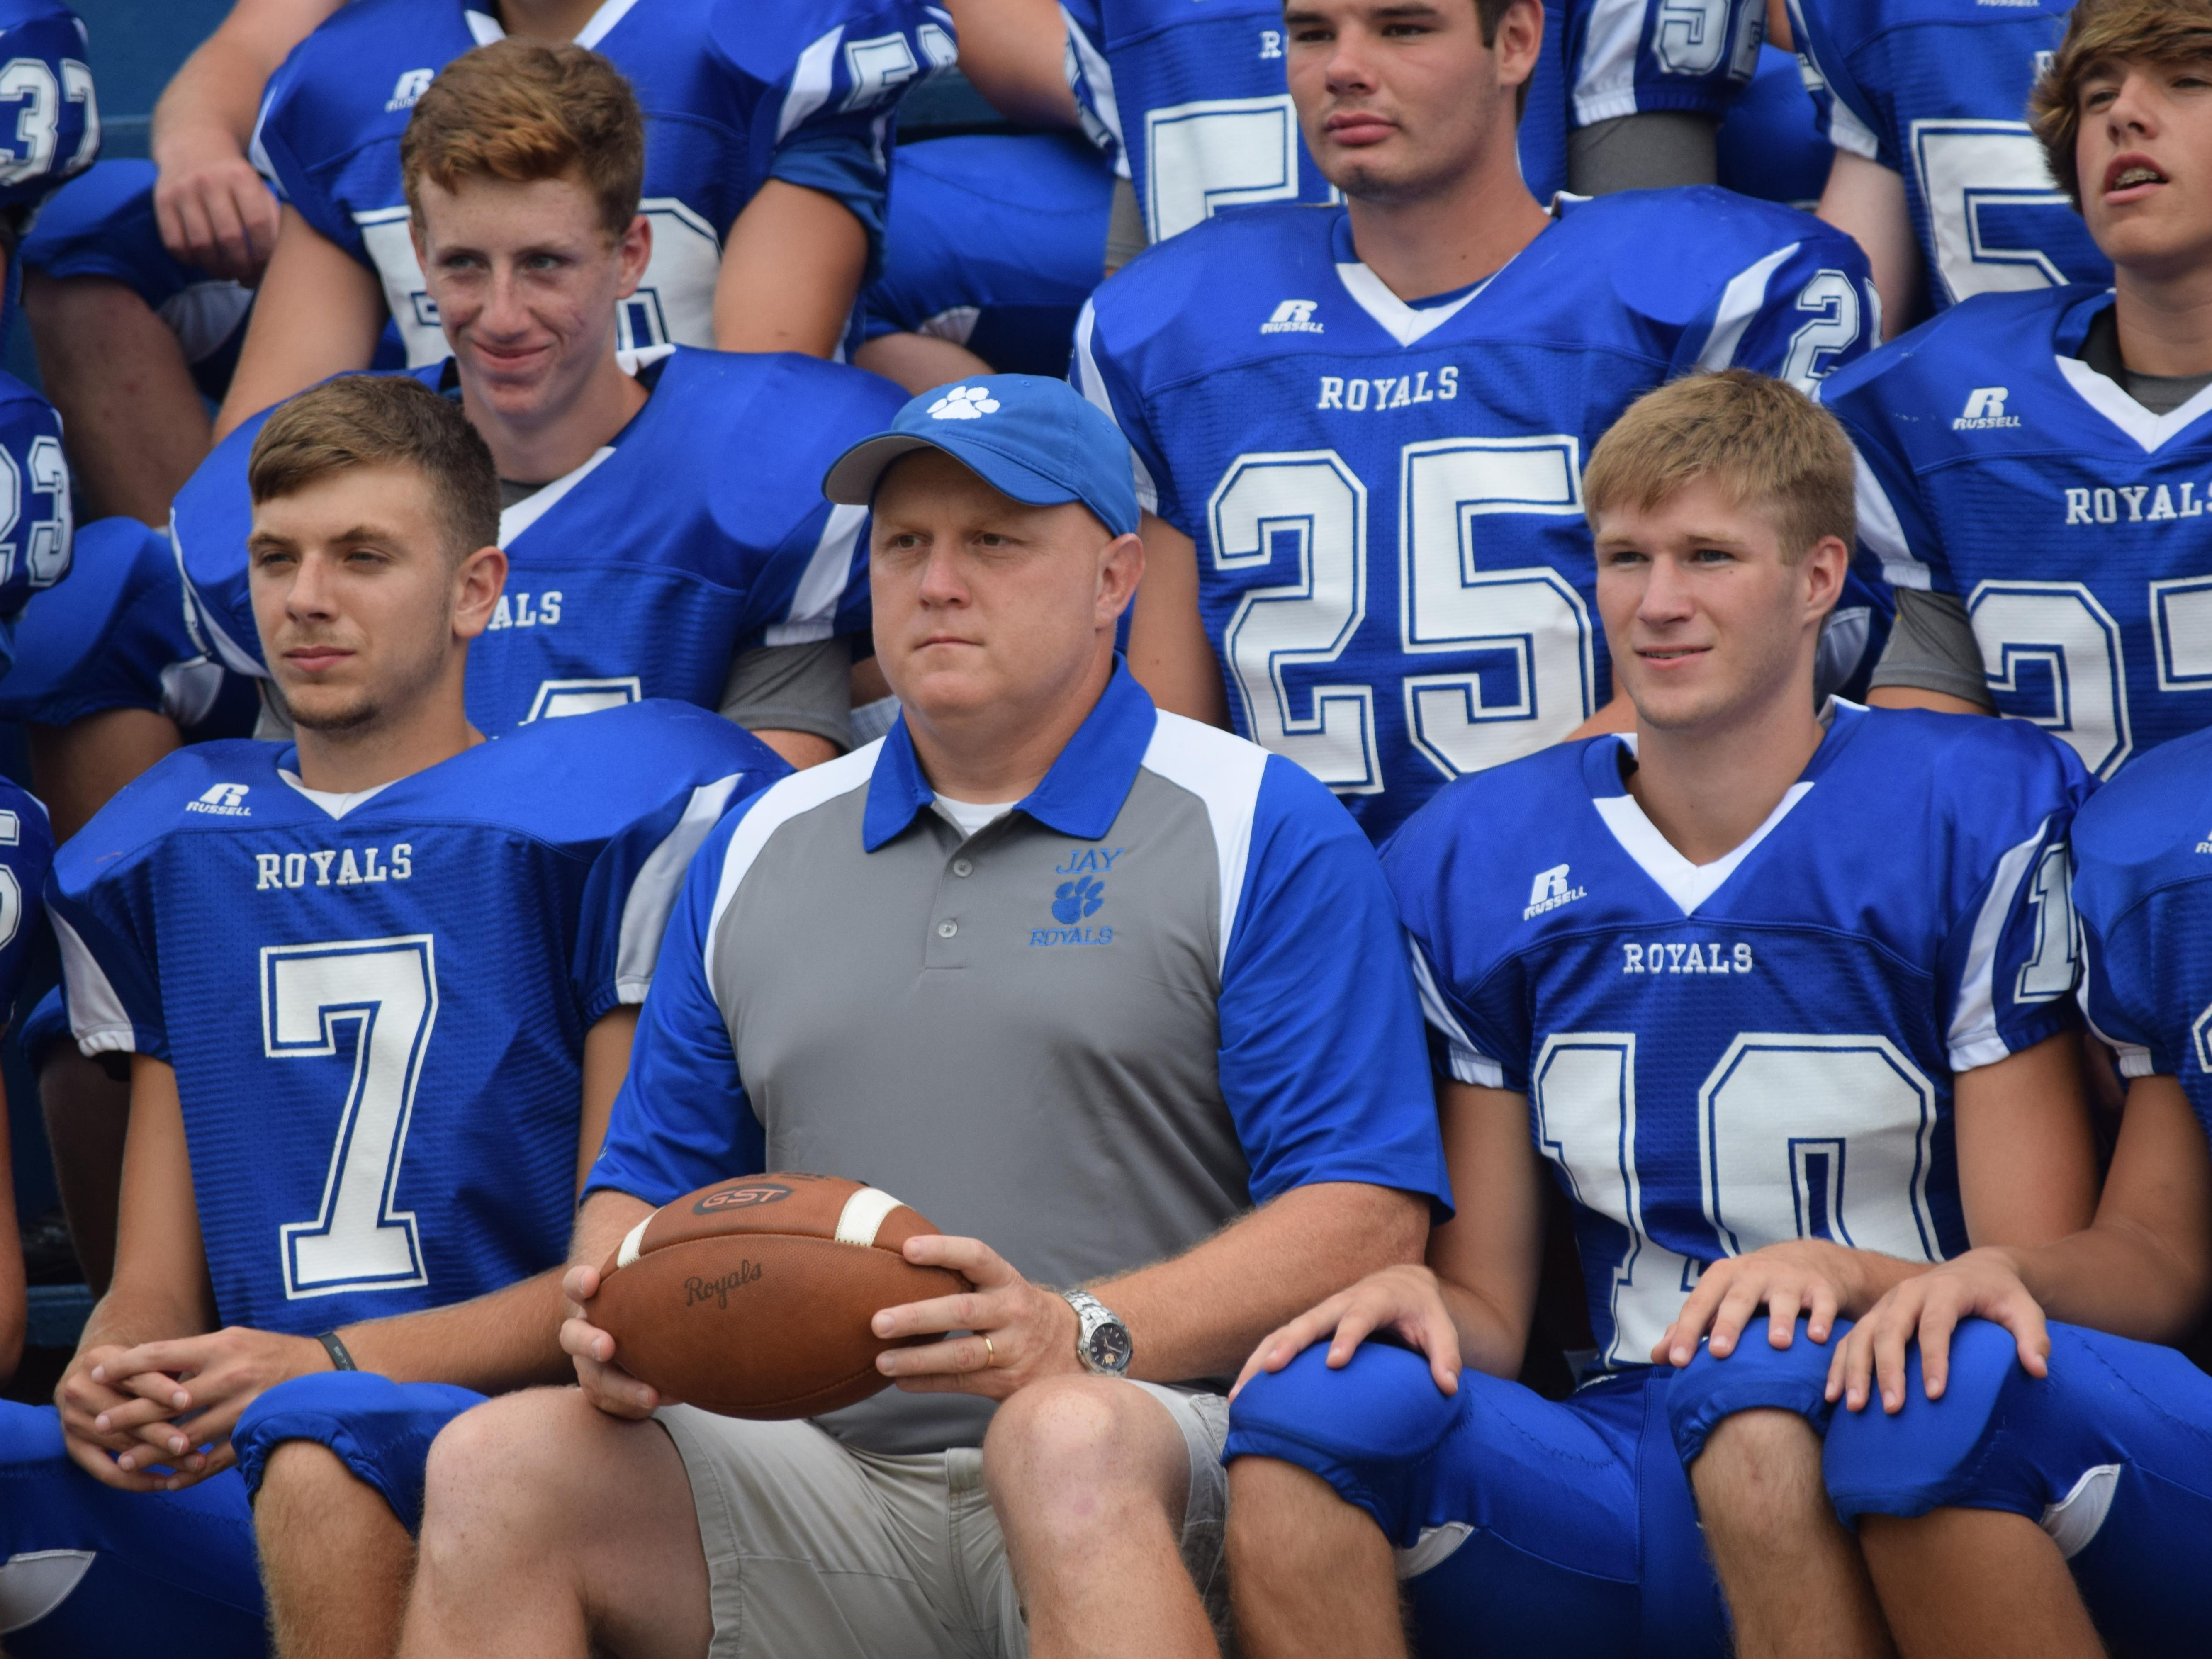 New Jay coach Melvin Kersey, a former Royals fullback and linebacker, has 46 players on this year's team, including 15 freshman and 13 sophomores.